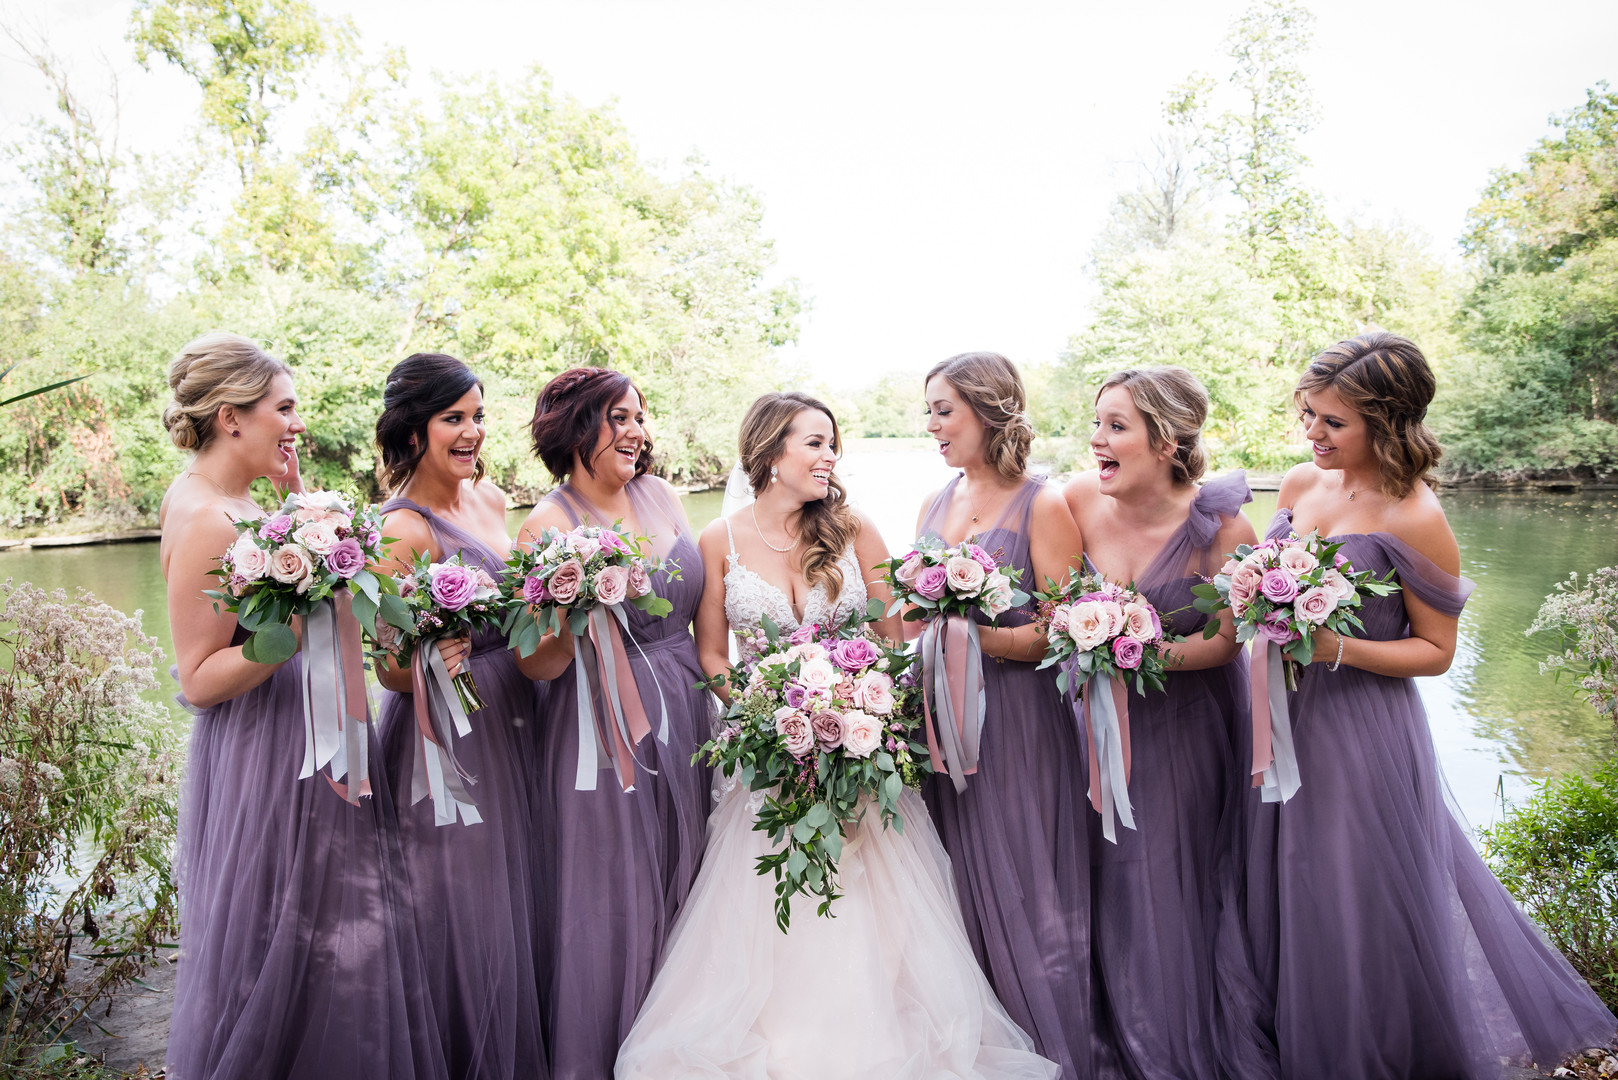 Woodsy Oak Brook, Illinois wedding captured by Inspired Eye Photography. See more wedding ideas at CHItheeWED.com!